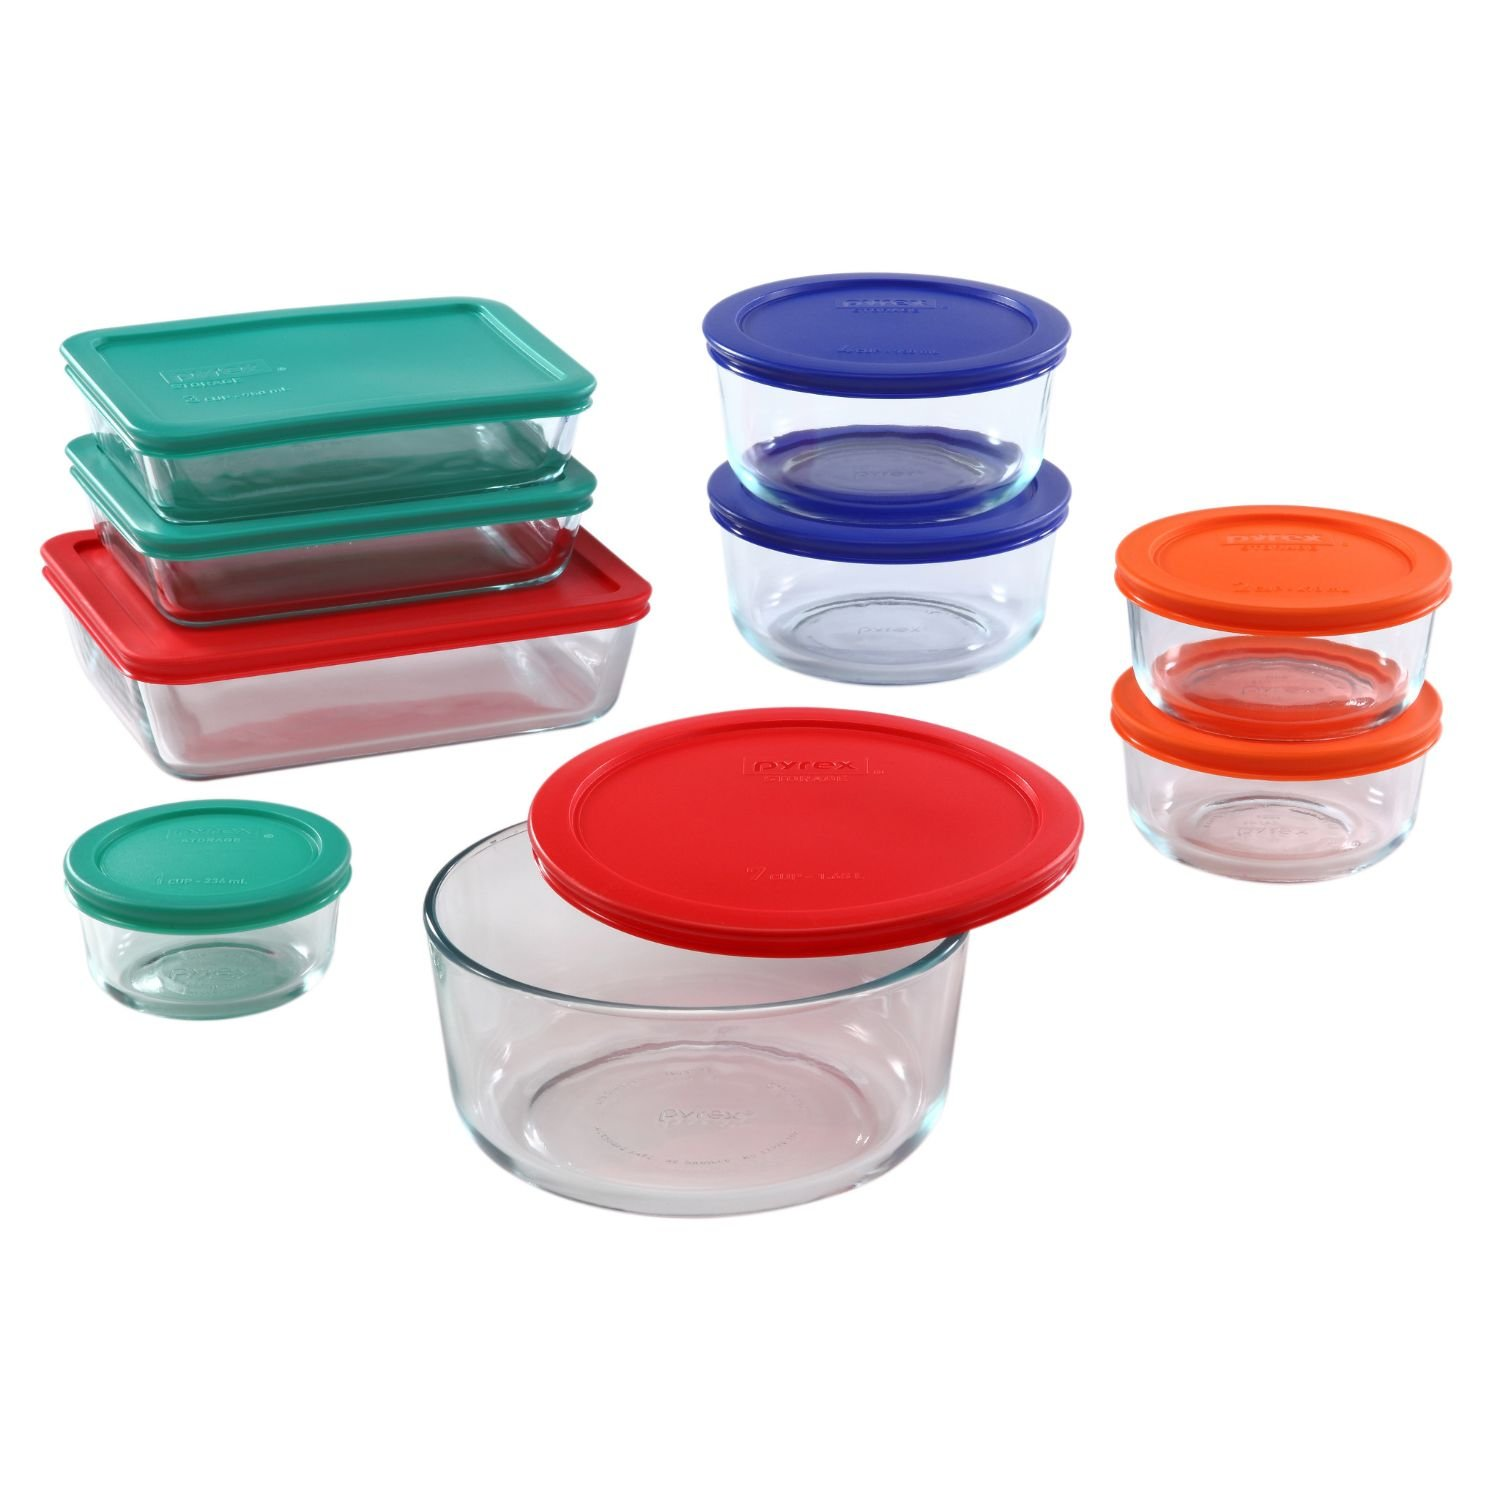 Pyrex Simply Store Glass Rectangular and Round Food Container Set (18-Piece, BPA-free) by Pyrex